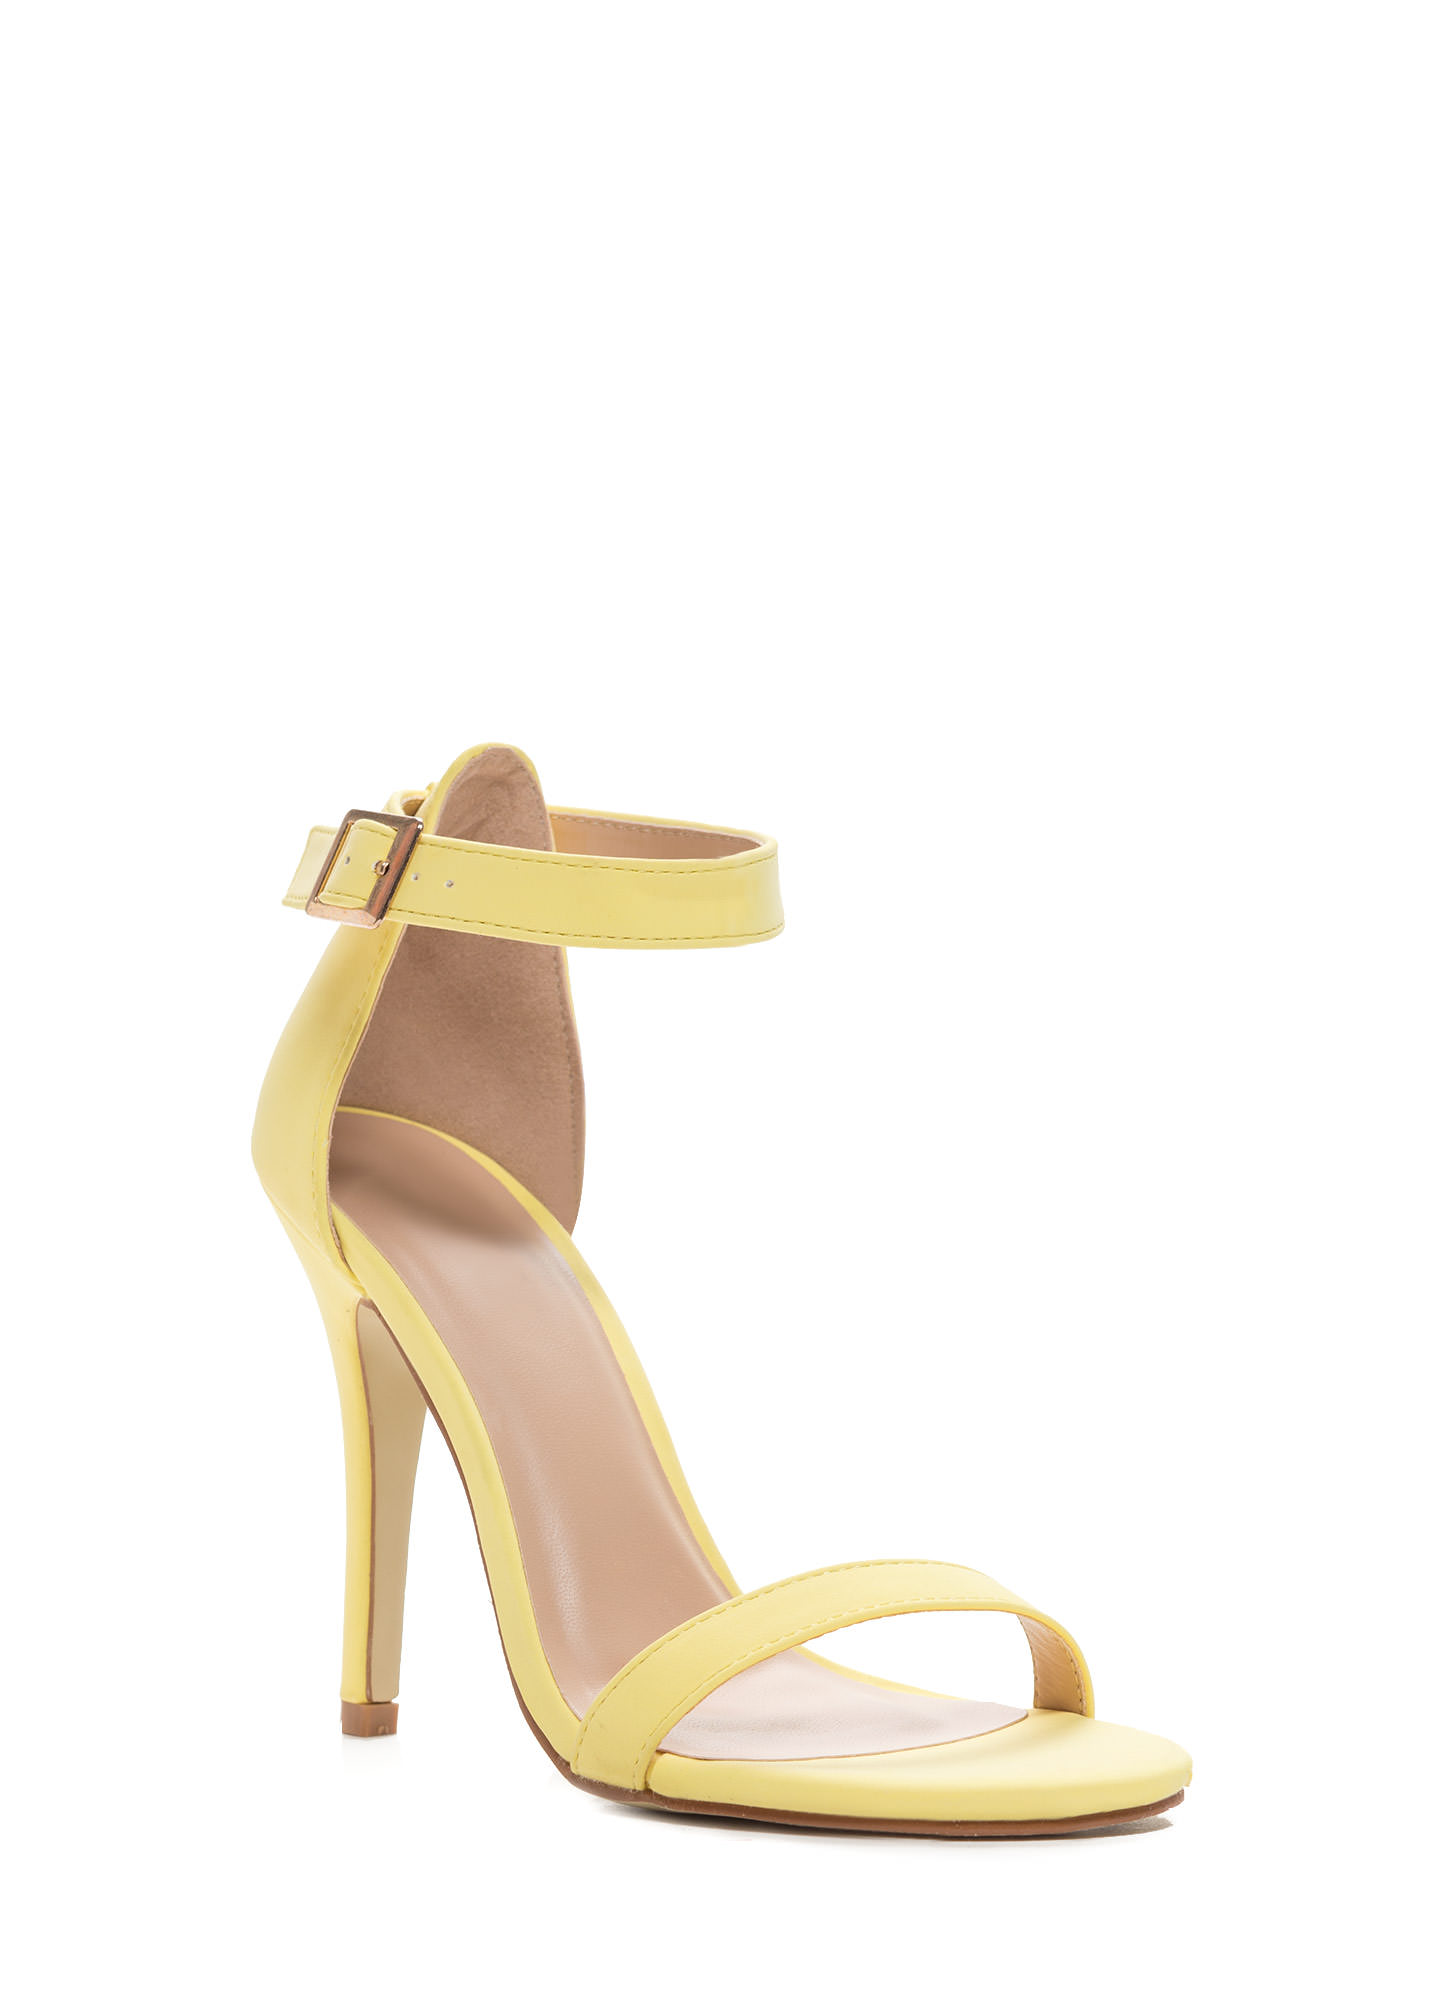 Less Is More Single-Strap Heels YELLOW